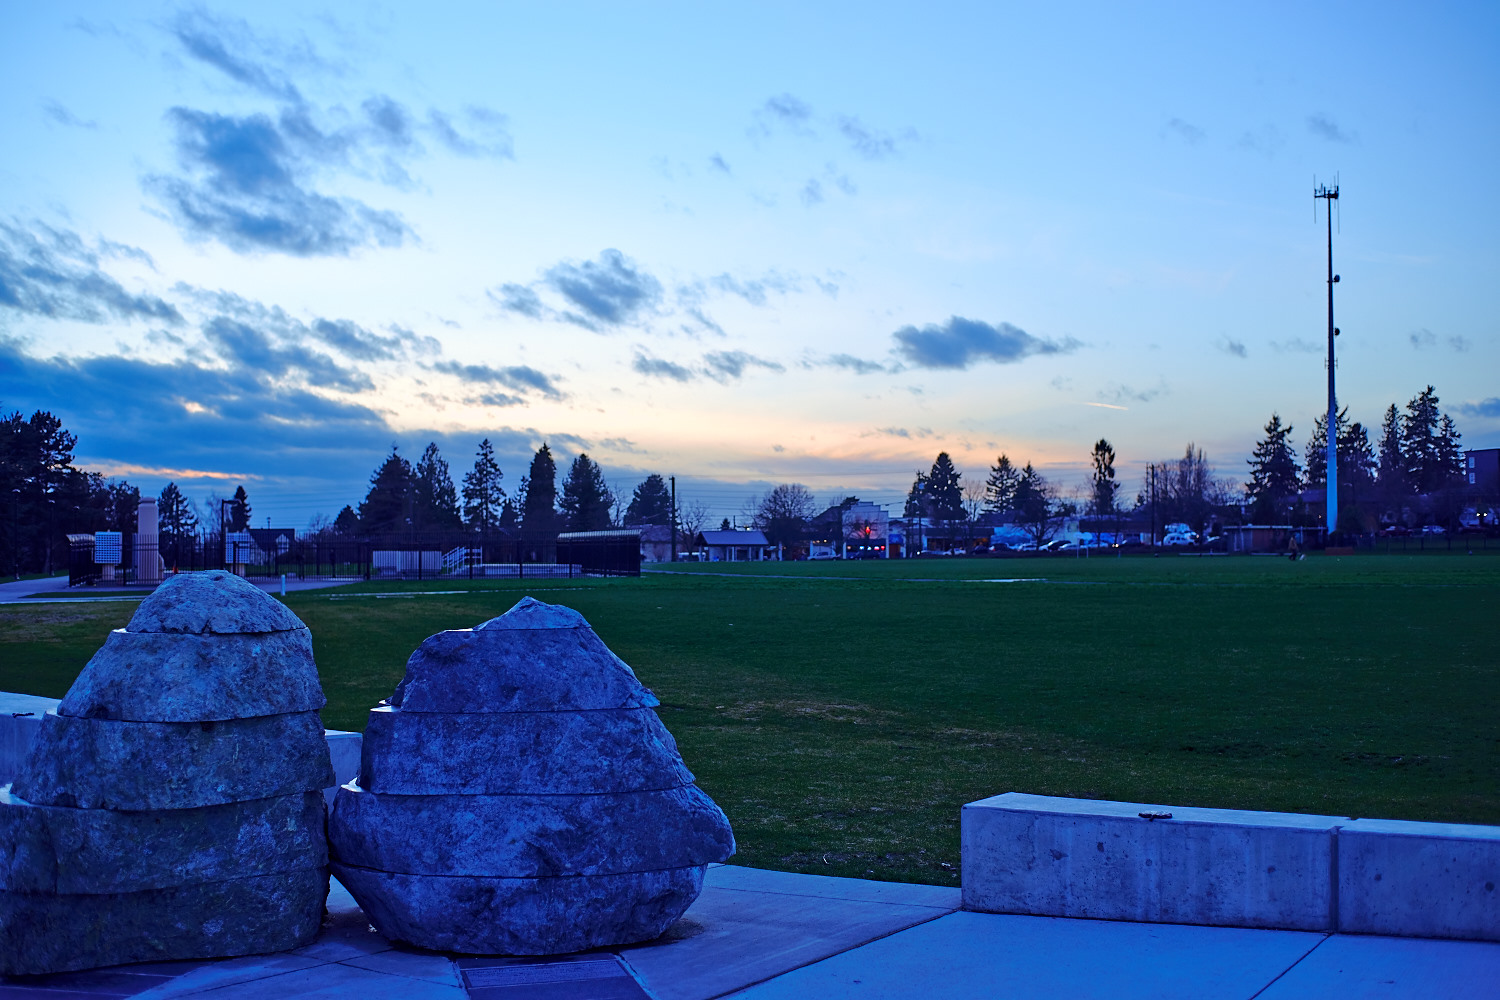 Rock sculptures with an open field. Great view for the sunset!